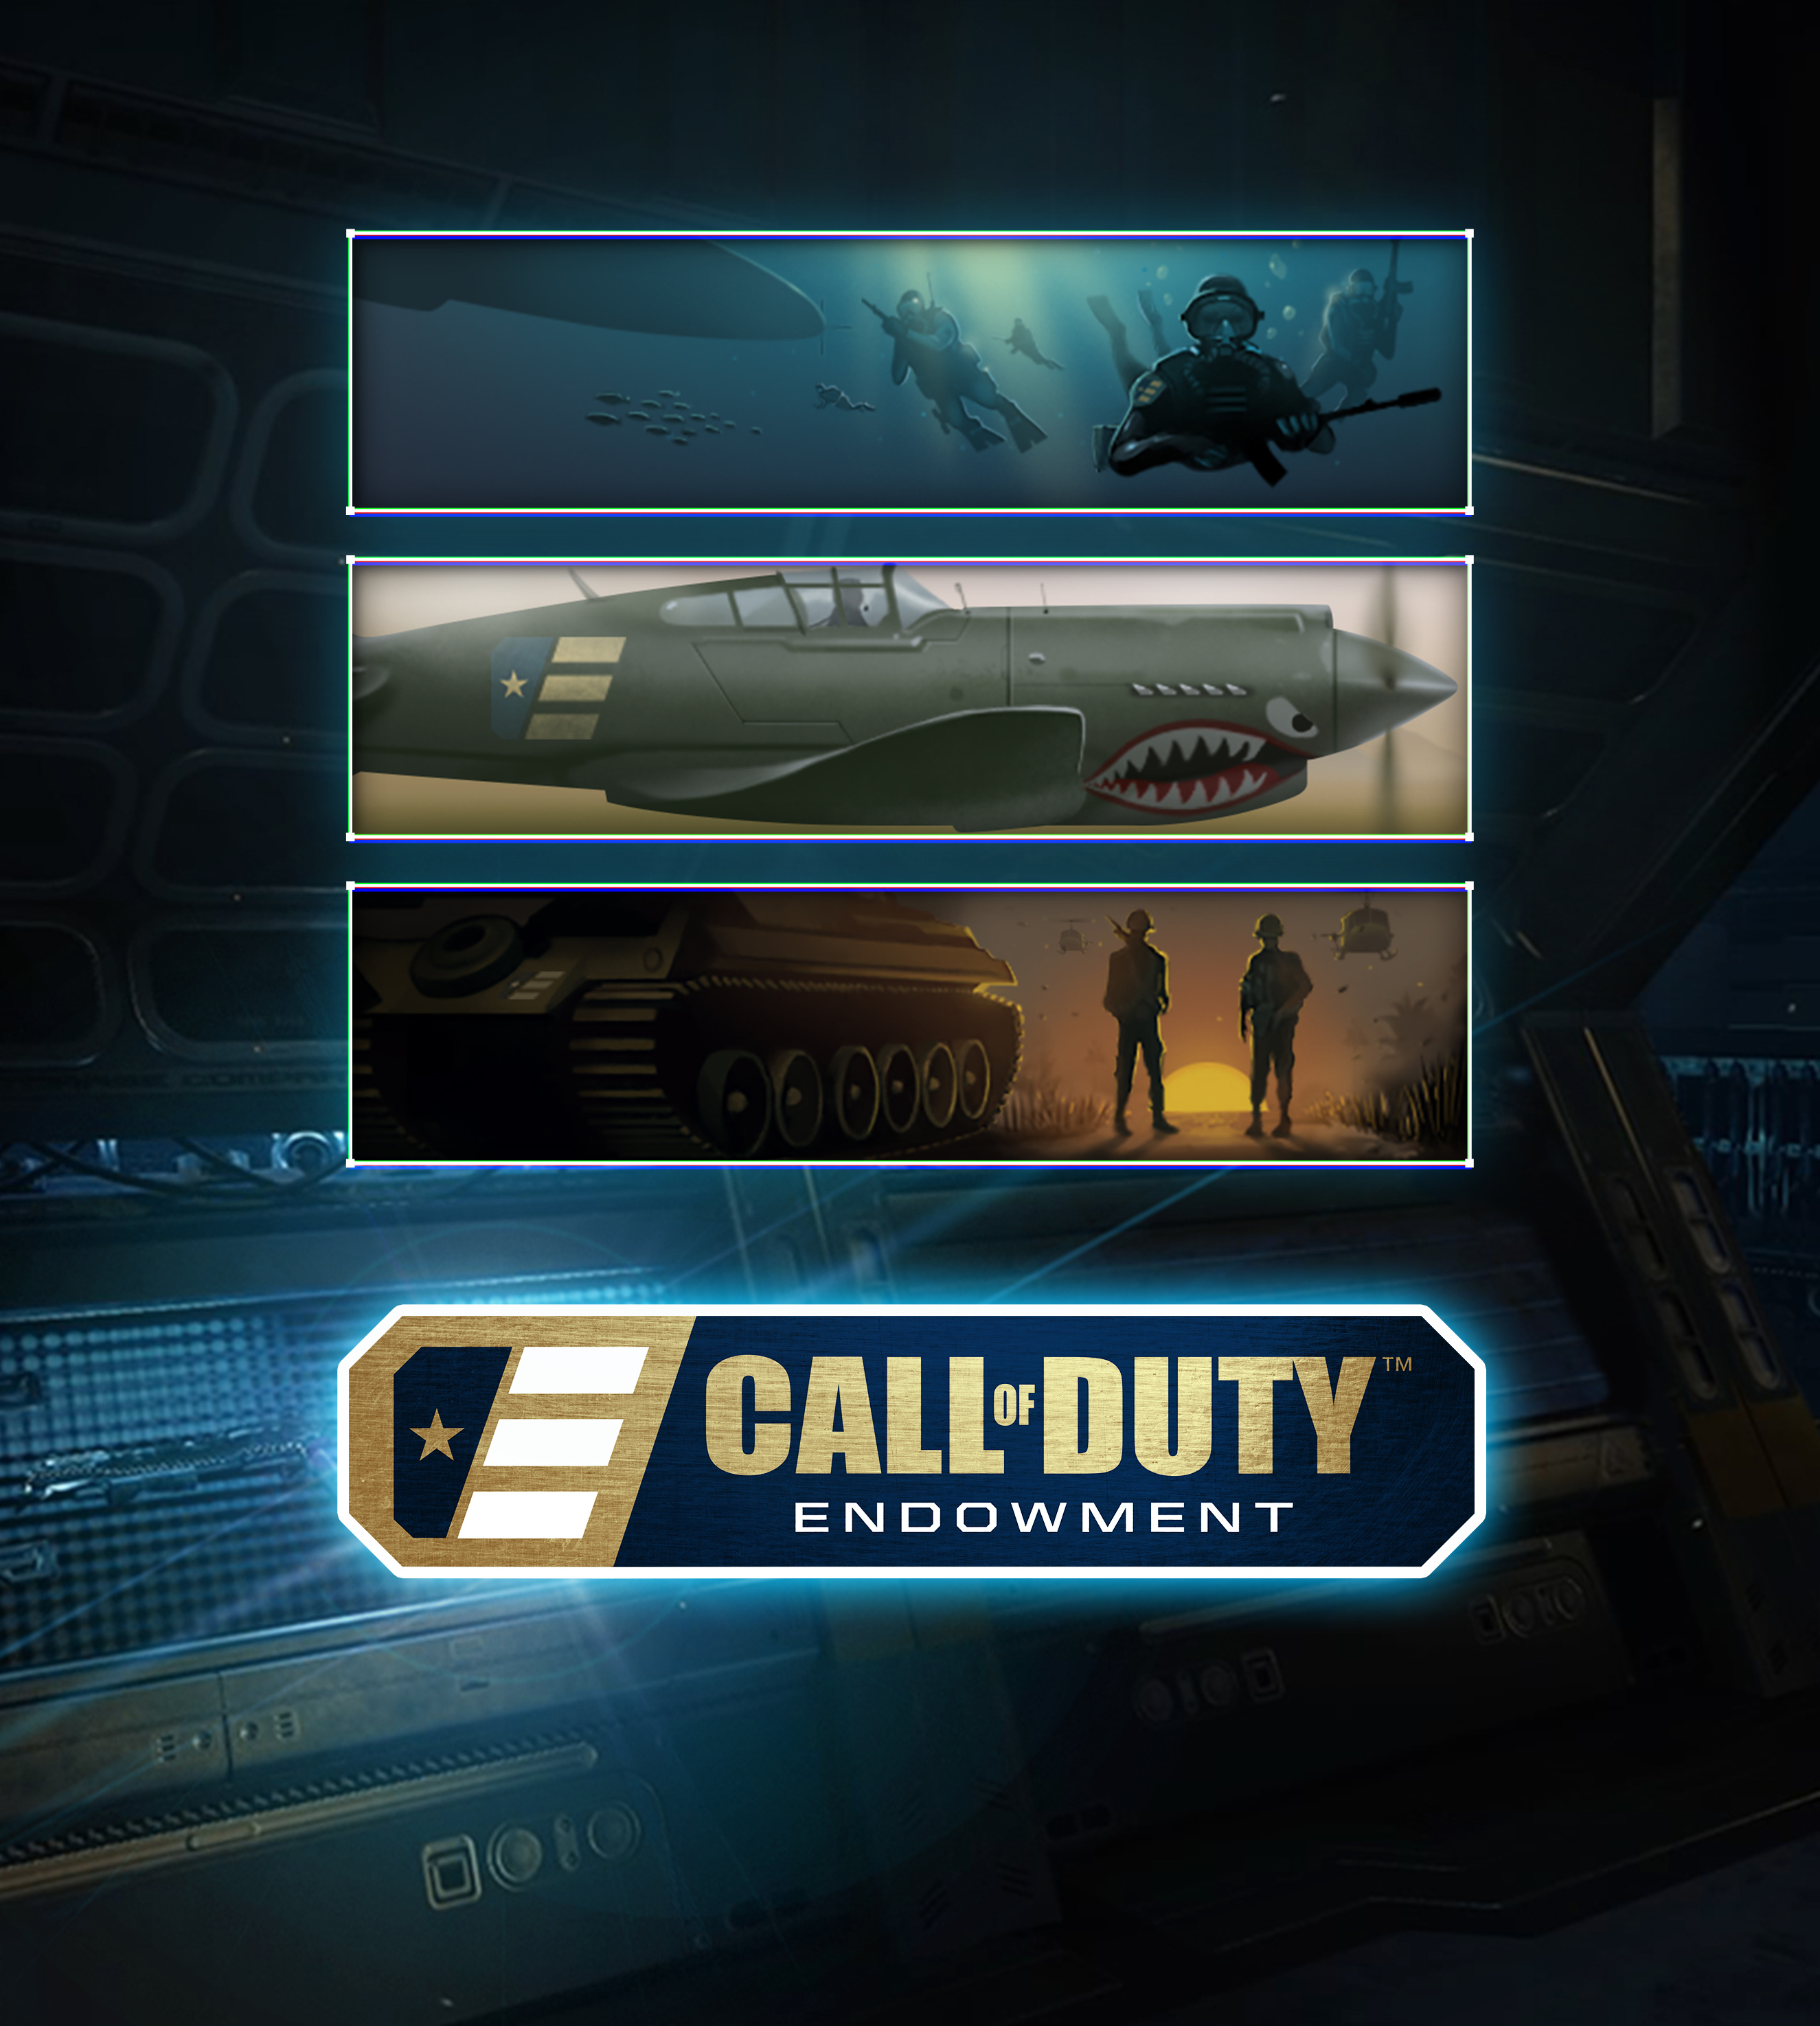 activision blizzard announces launch of new call of duty black ops iii calling cards to support veteran hiring business wire - Calling Card